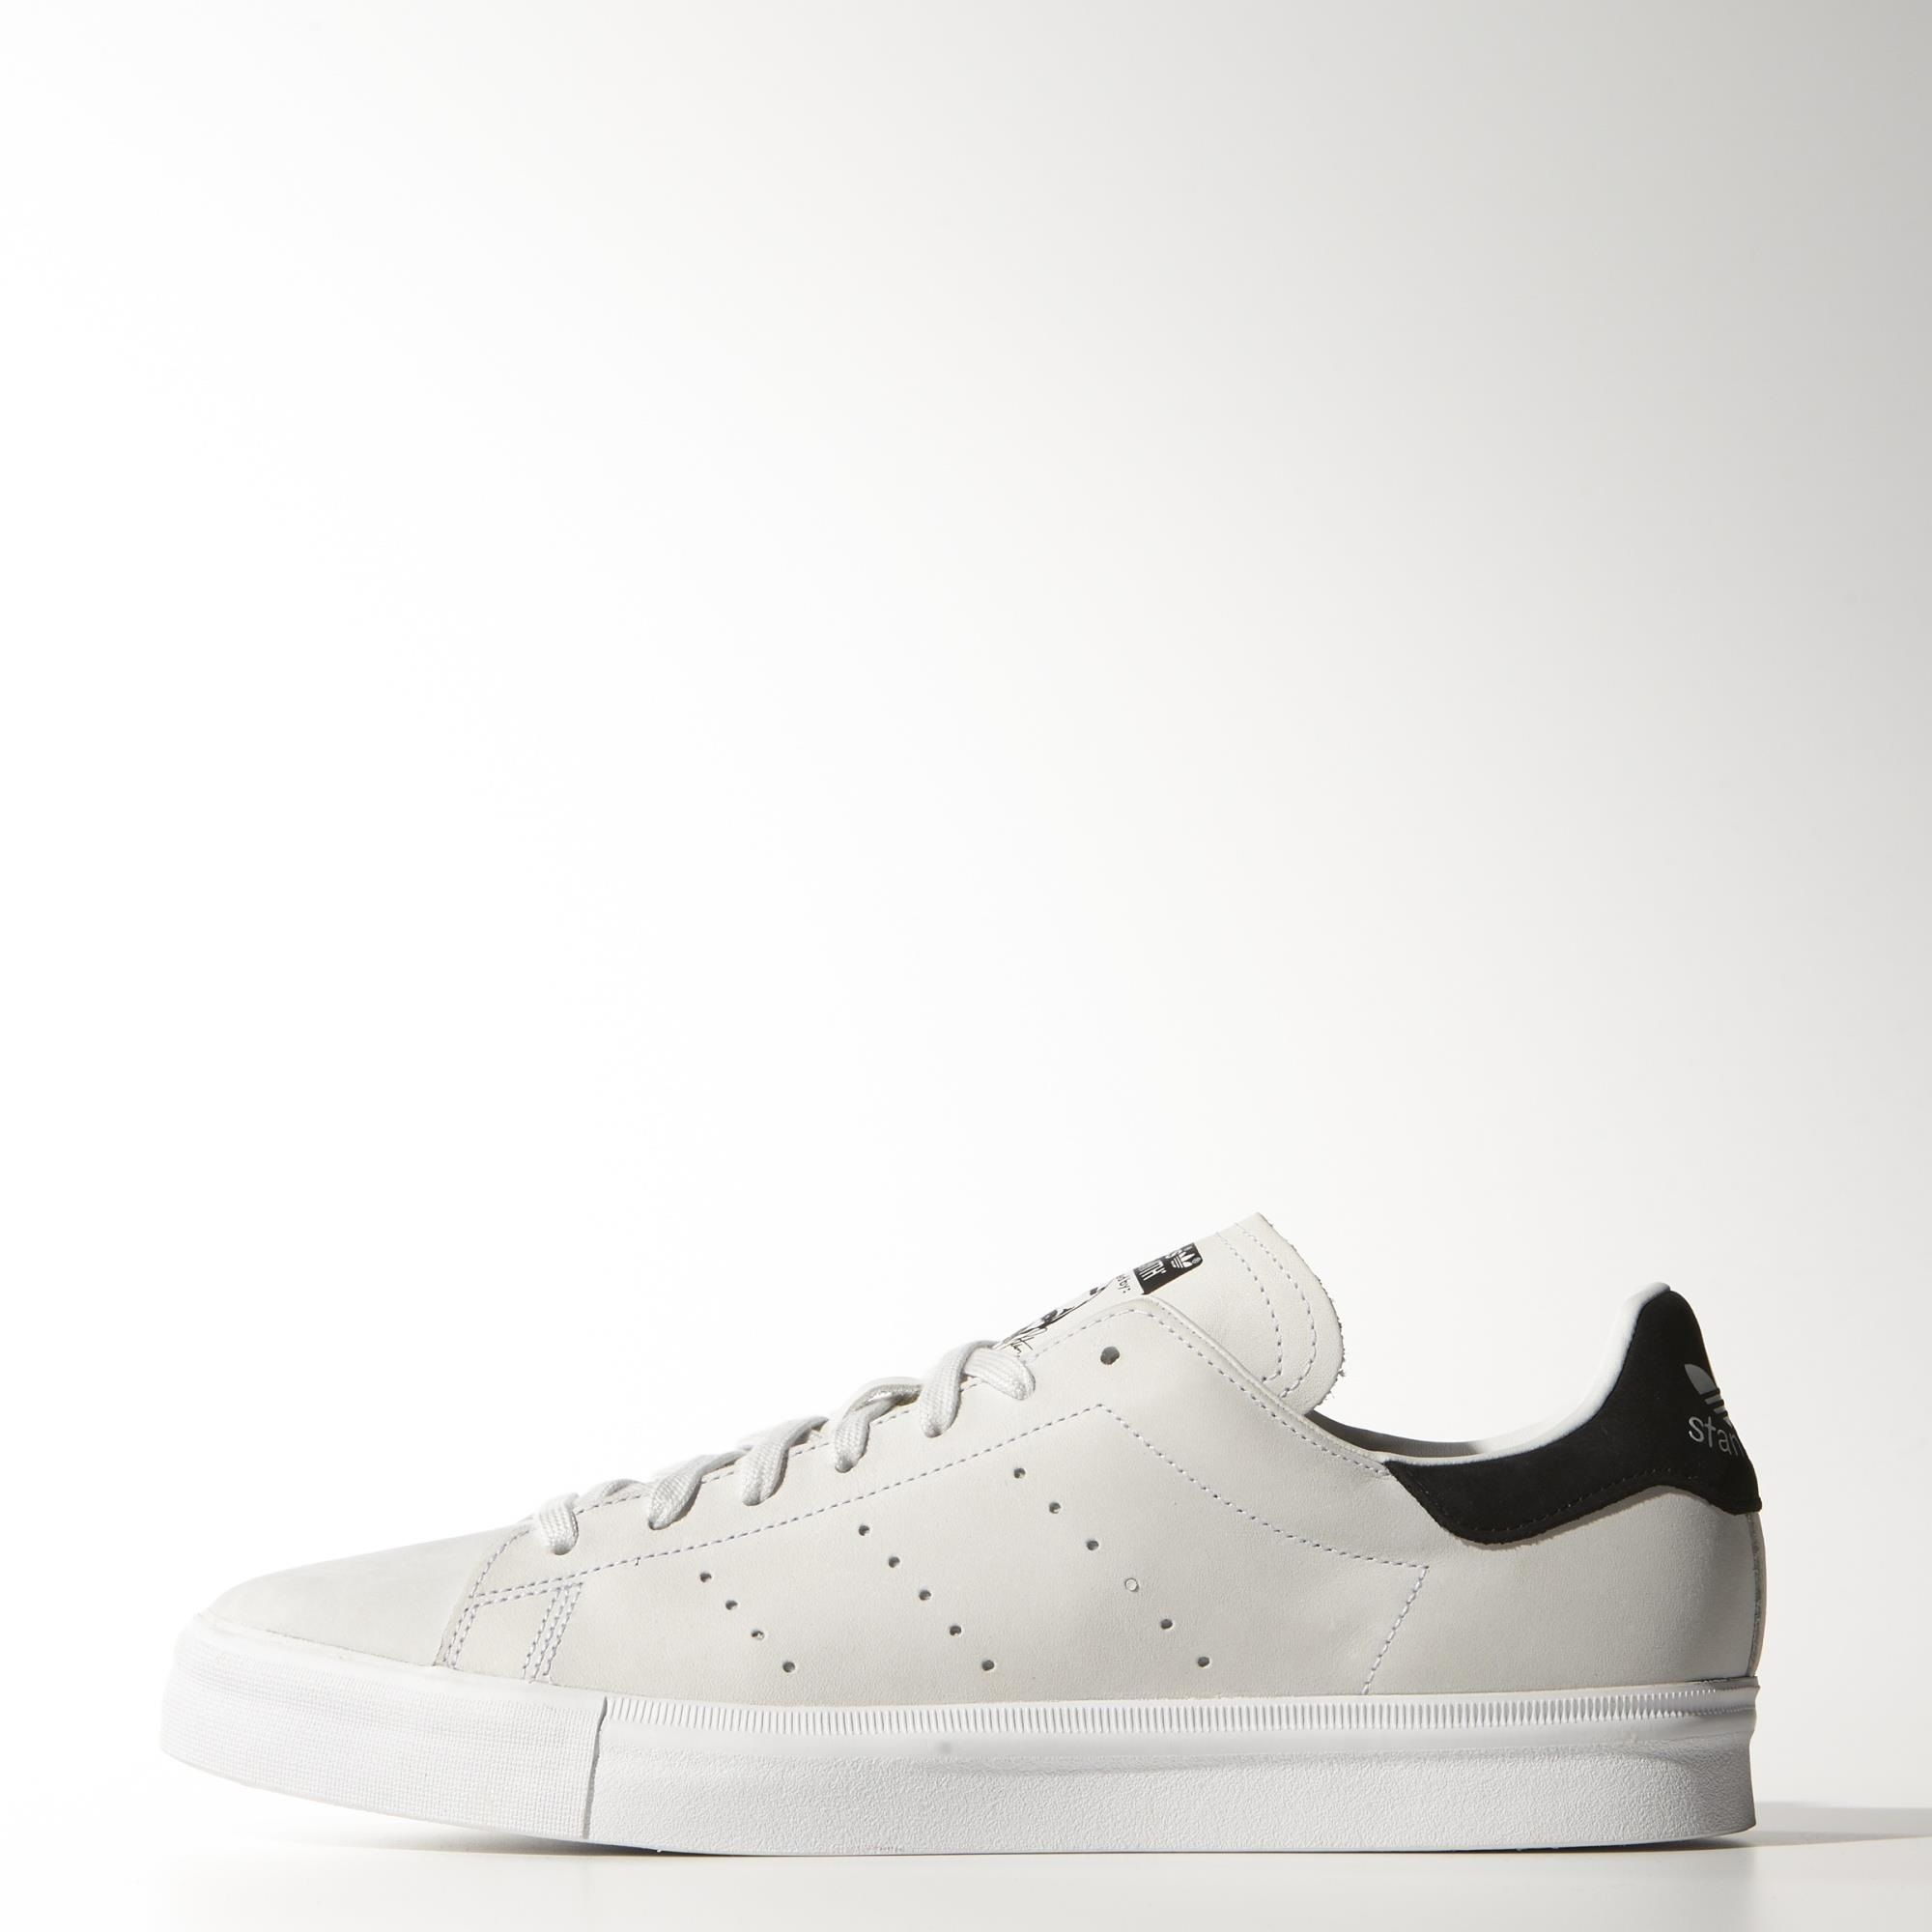 adidas shoes store near me number look 581446